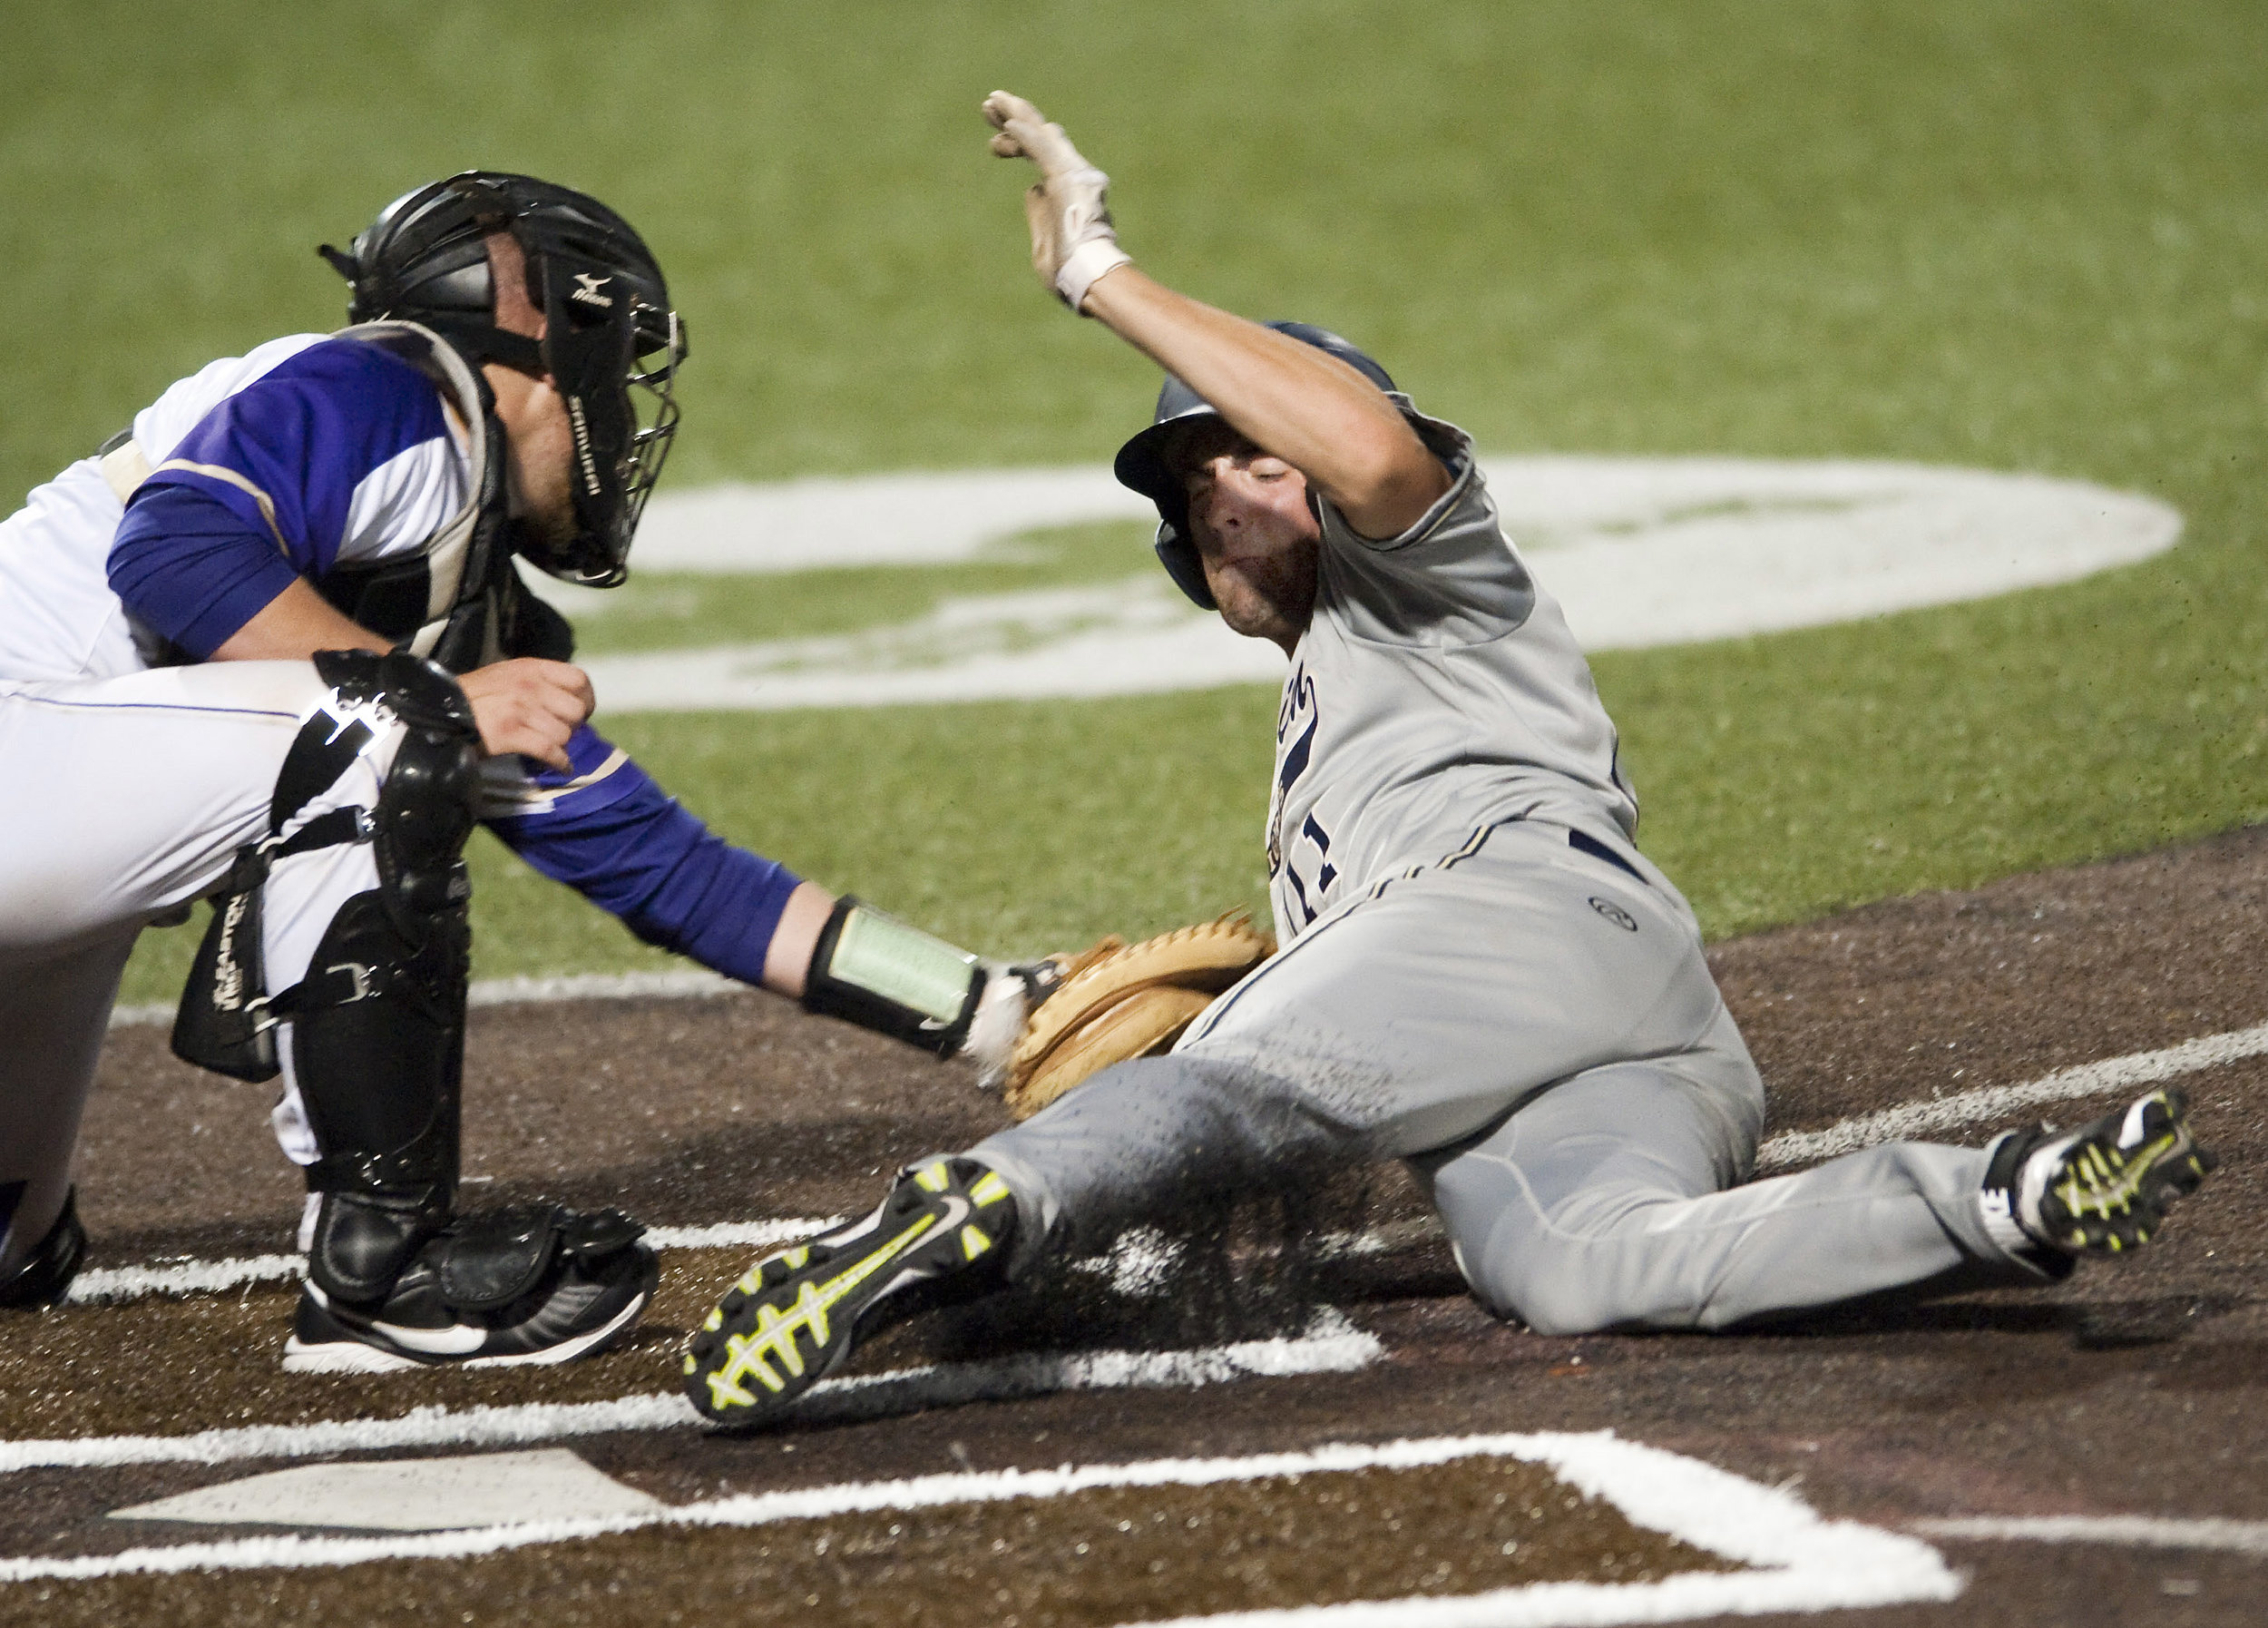 Norwin's Reno Rainey is tagged out at home plate by Plum's Michael Anderson in the WPIAL Class AAAA championship game on Wednesday, June, 2016, at Consol Energy Park in Washington. Norwin won 7-3.